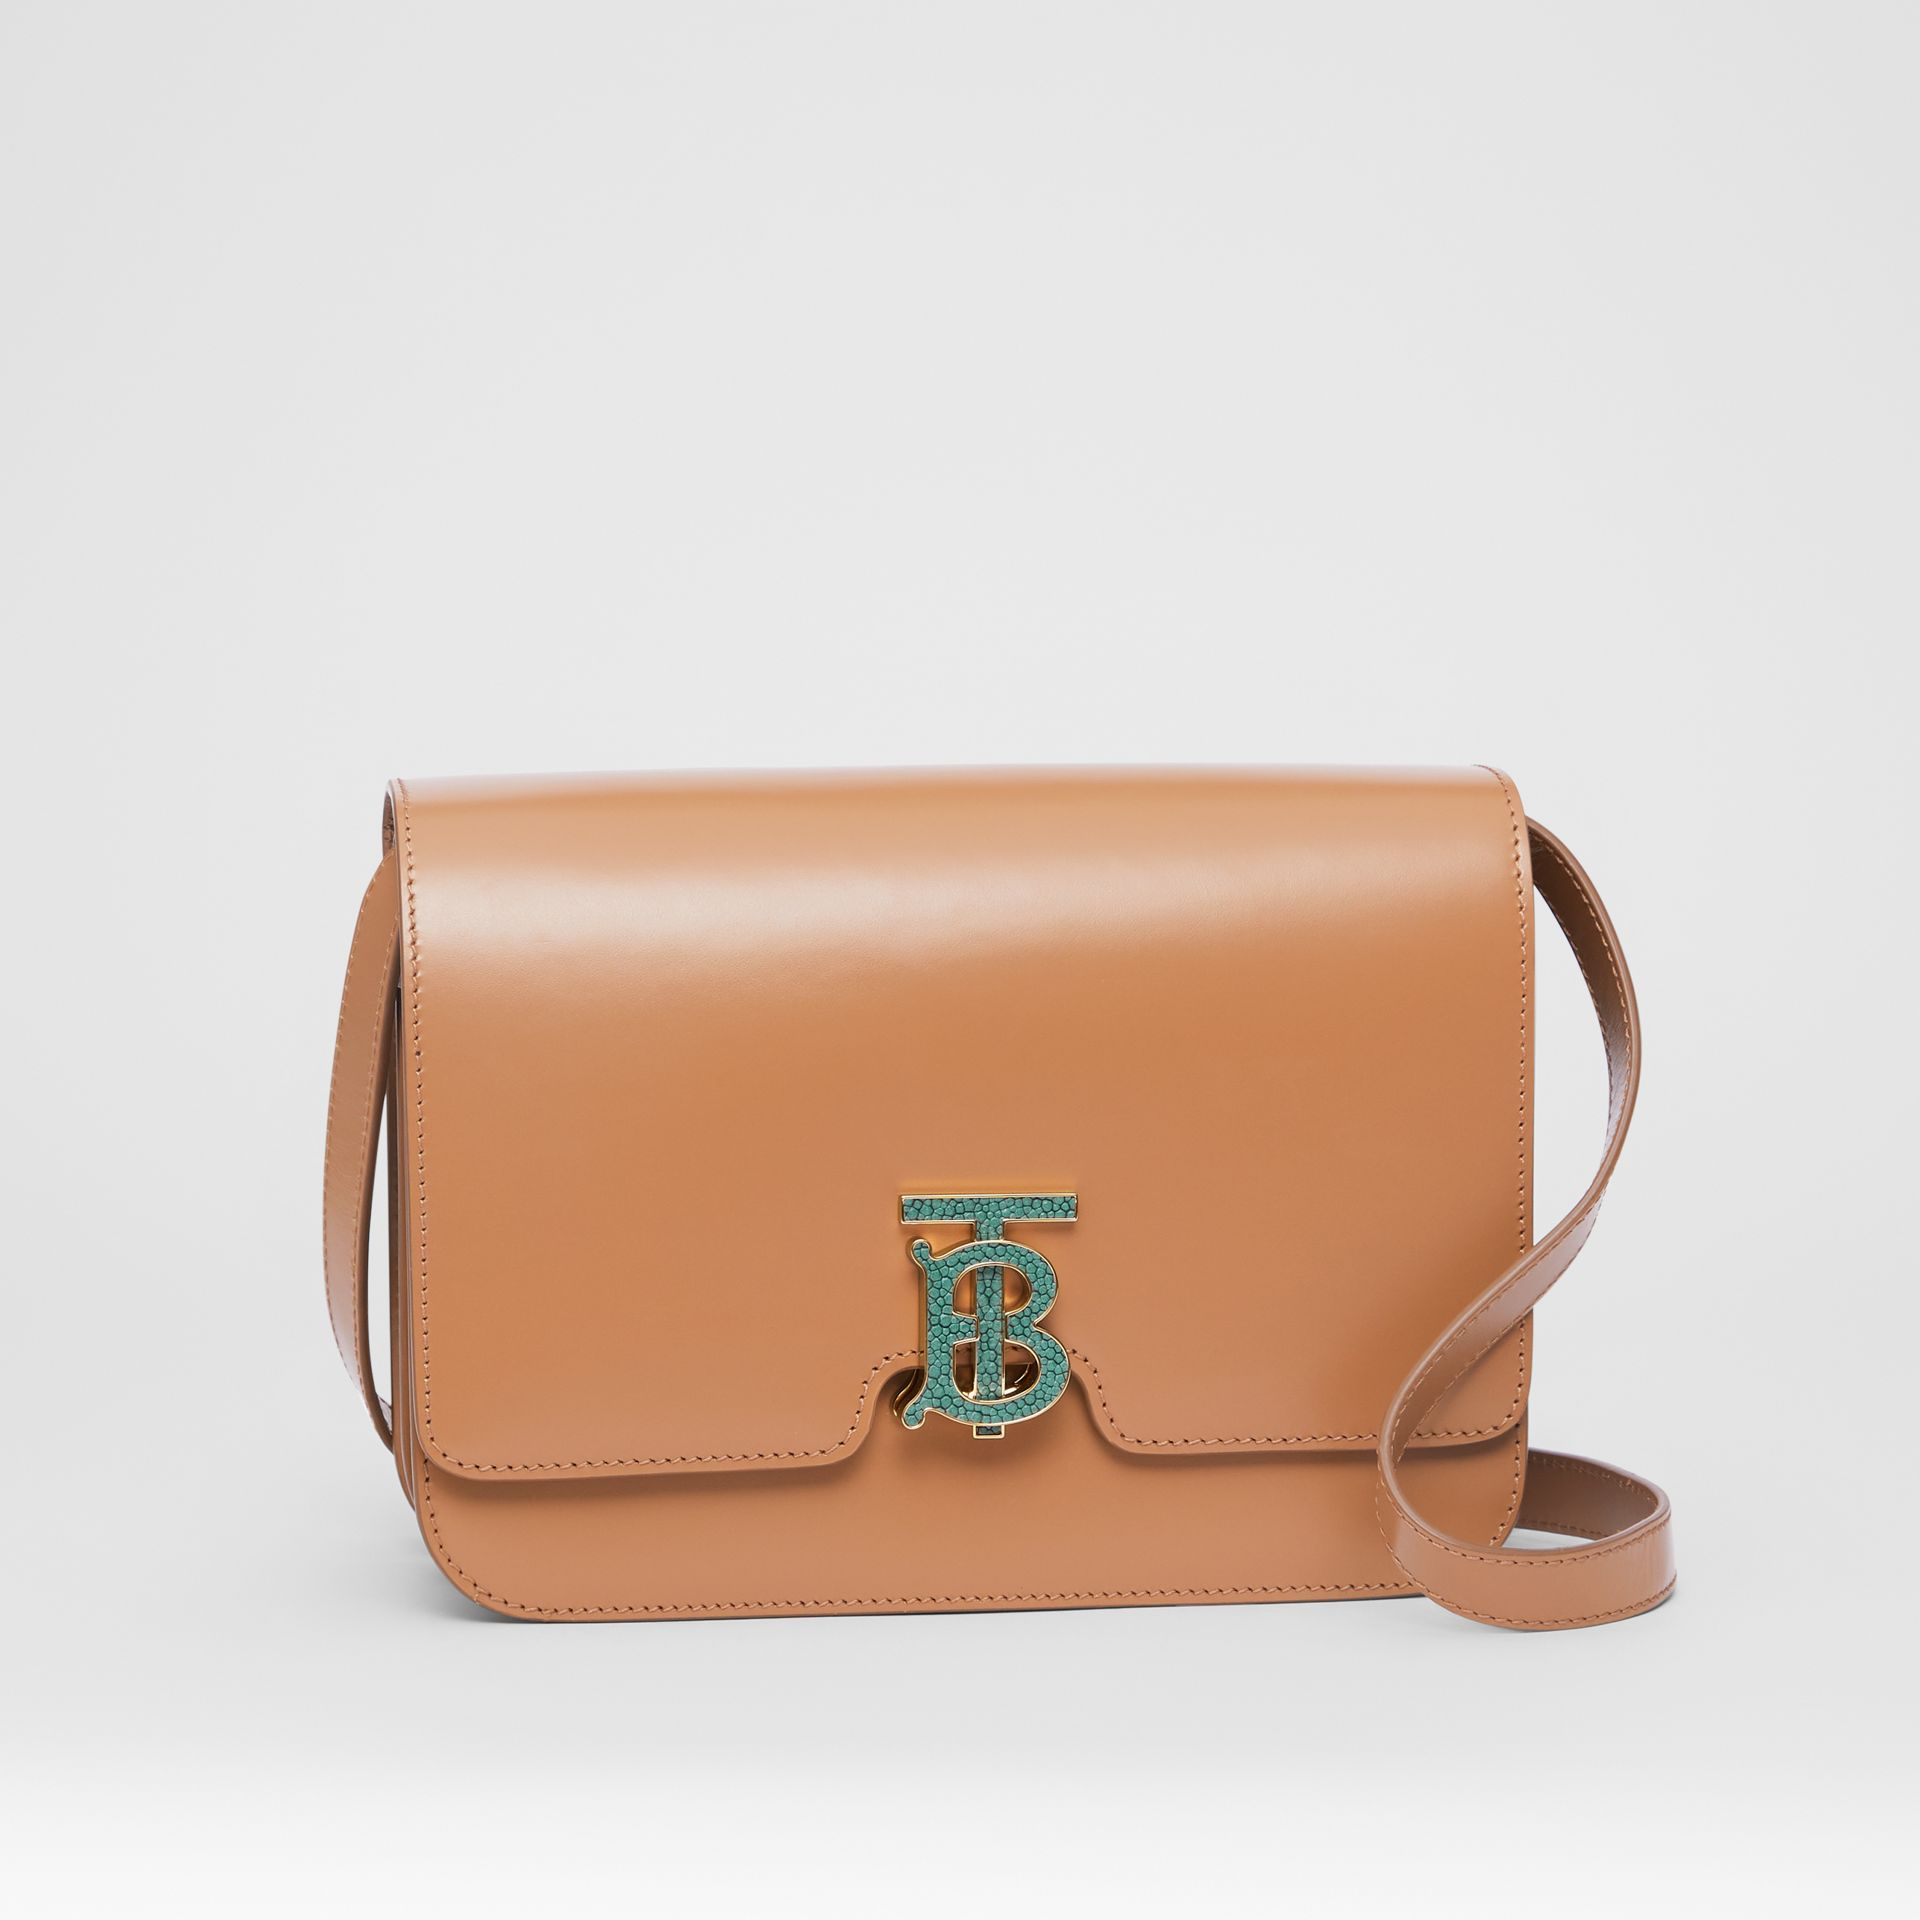 Medium Leather TB Bag in Flaxseed - Women | Burberry - gallery image 6